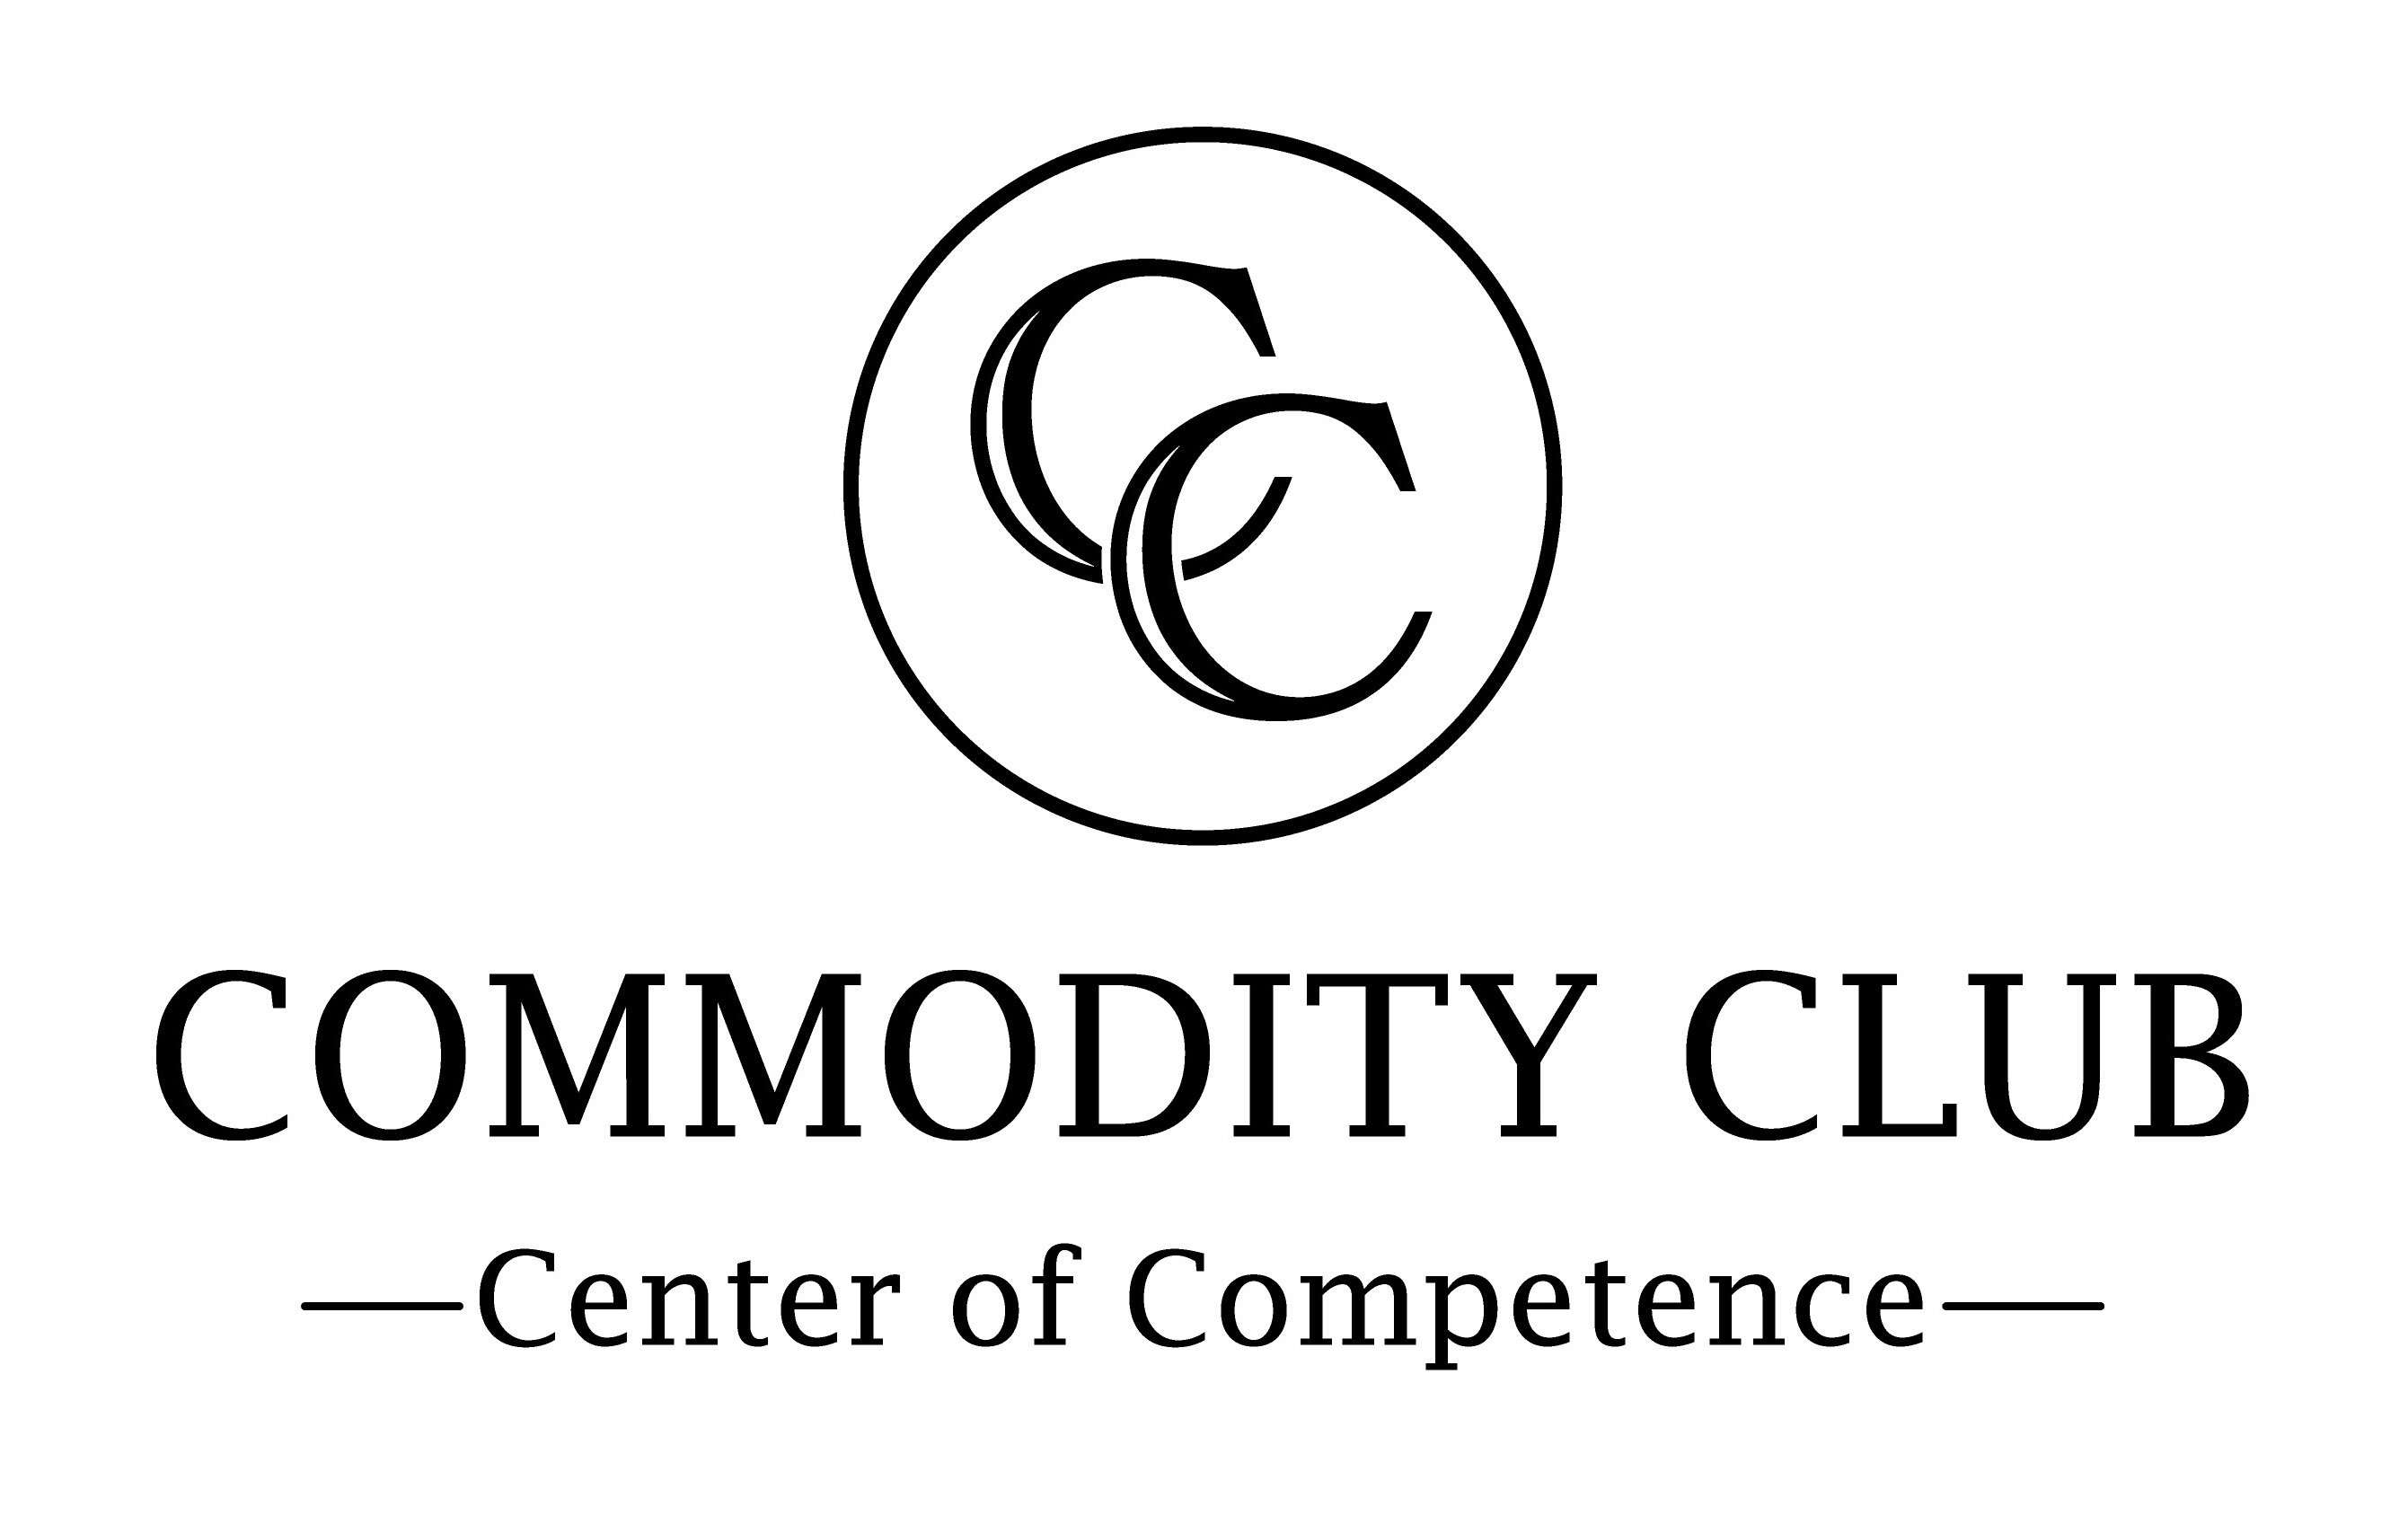 Degussa Goldhandel Commodity Club Logo